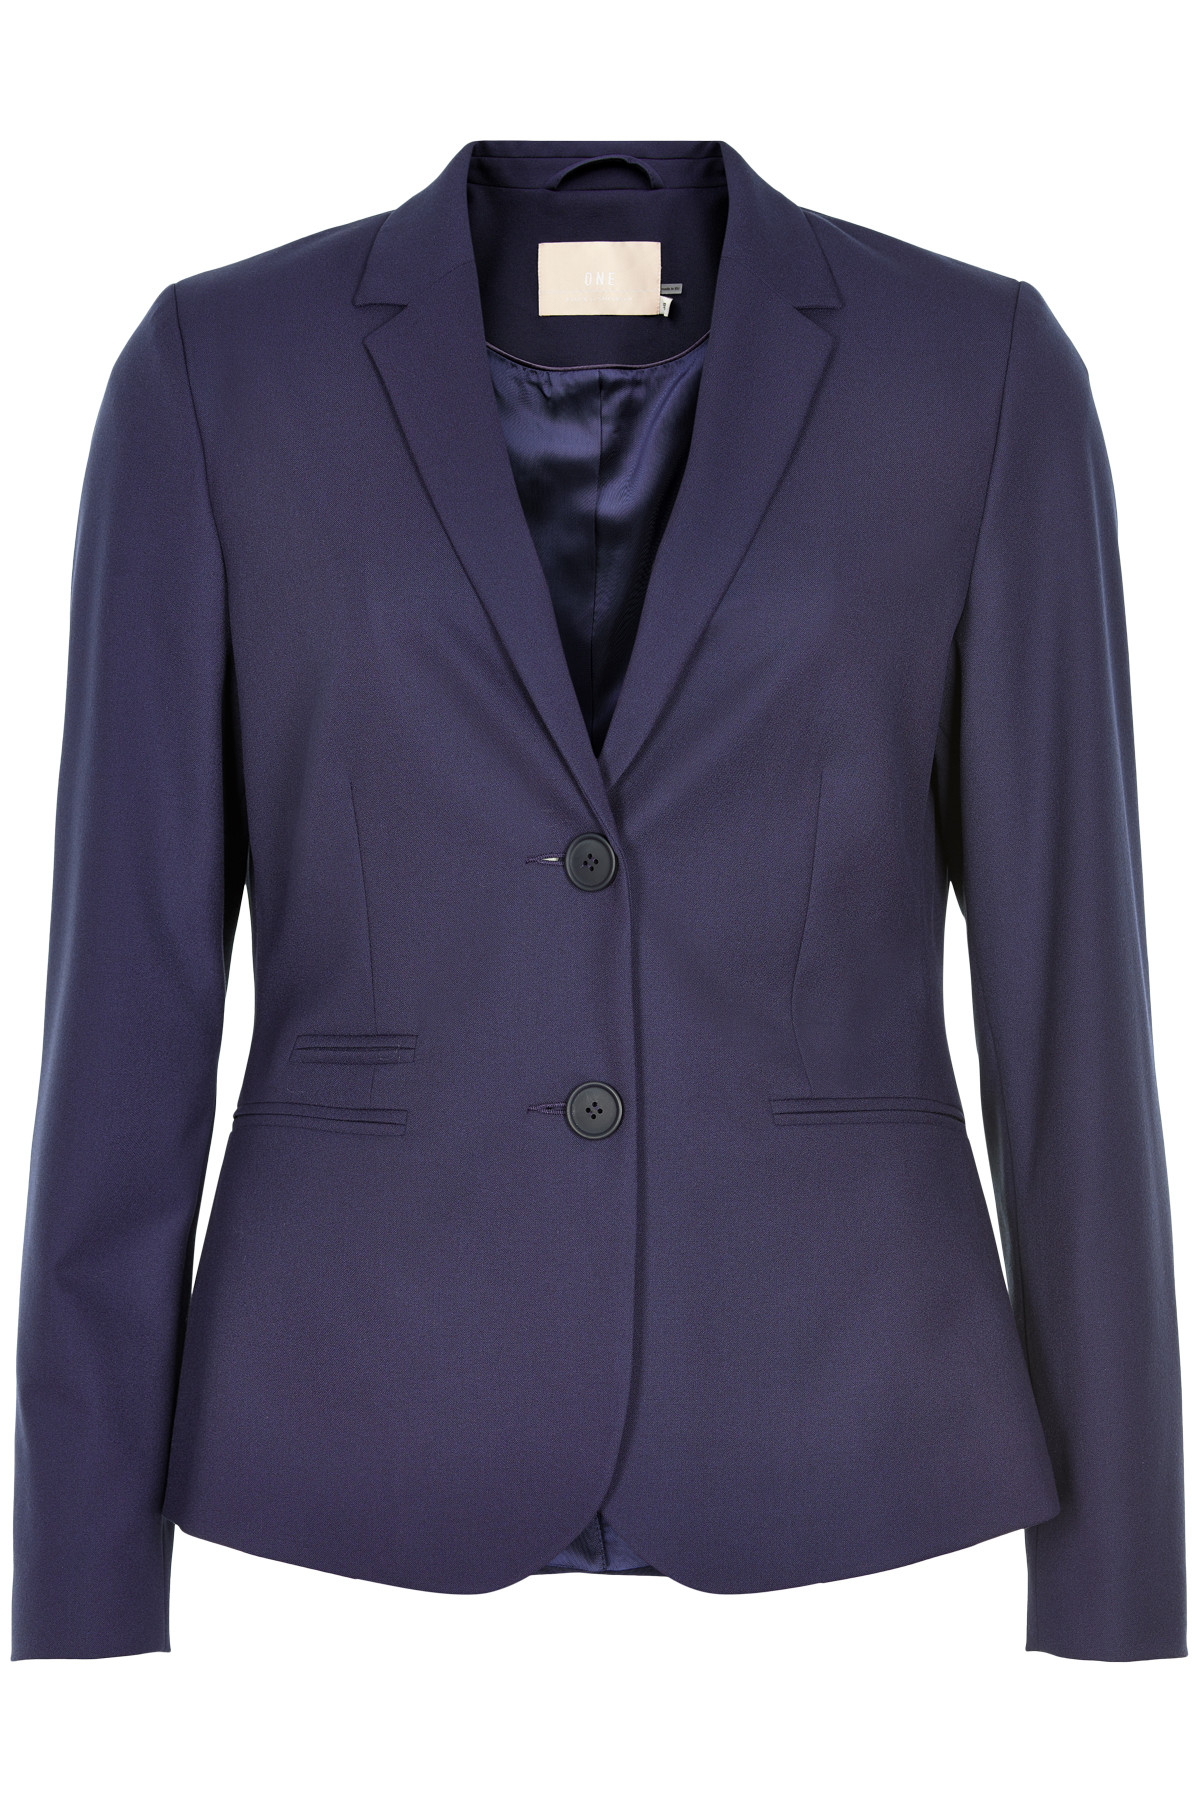 Image of   KAREN BY SIMONSEN SYDNEY BLAZER 10102089 (Dark Blue 40520, 38)